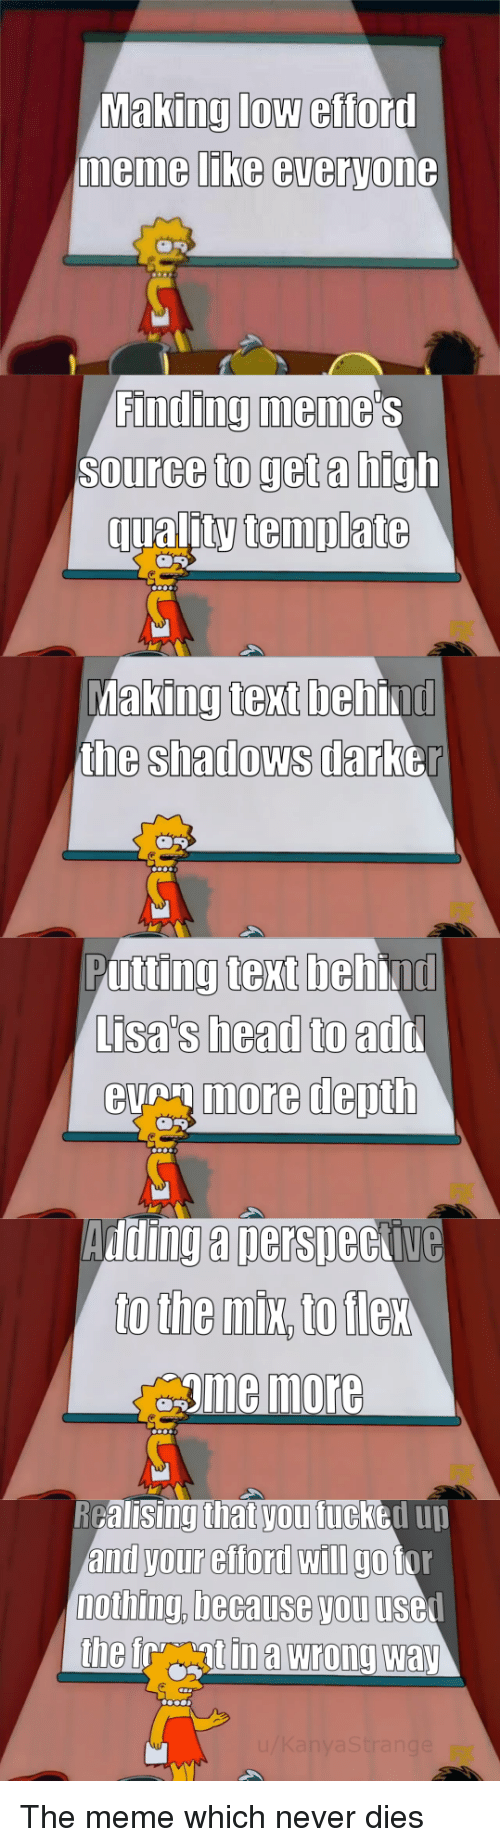 Beh: Making low efford  memme LIKe everyone  Finding meme  Source to get a high  qualitytemplate  king text beh  the shadows darb  Ma  ind  er  Putting text behind  Lisa's head to  eumore depth  add  Adding a nersneckive  gme more  RGalisingthat vou fucked uu  and your efford wIlI go tor  nothing, because you usel The meme which never dies